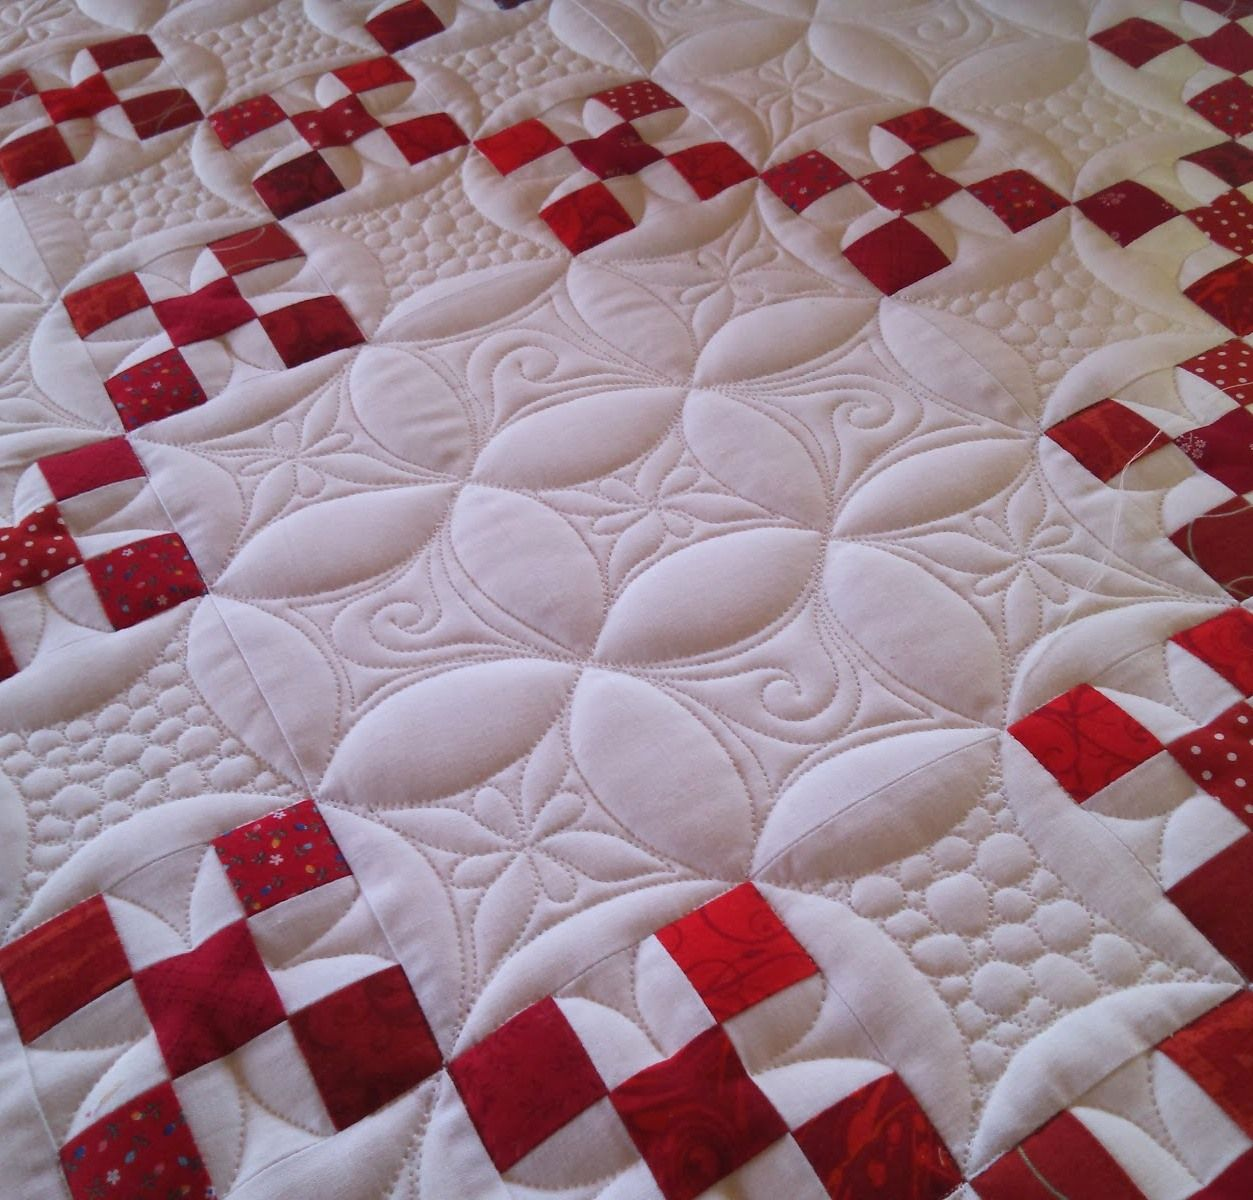 "Quilting by Marlene Baerg Oddie at KISSed quilts. Double Nine Patch quilt published in ""Red, White and Quilted"" by Linda Baxter Lasco 